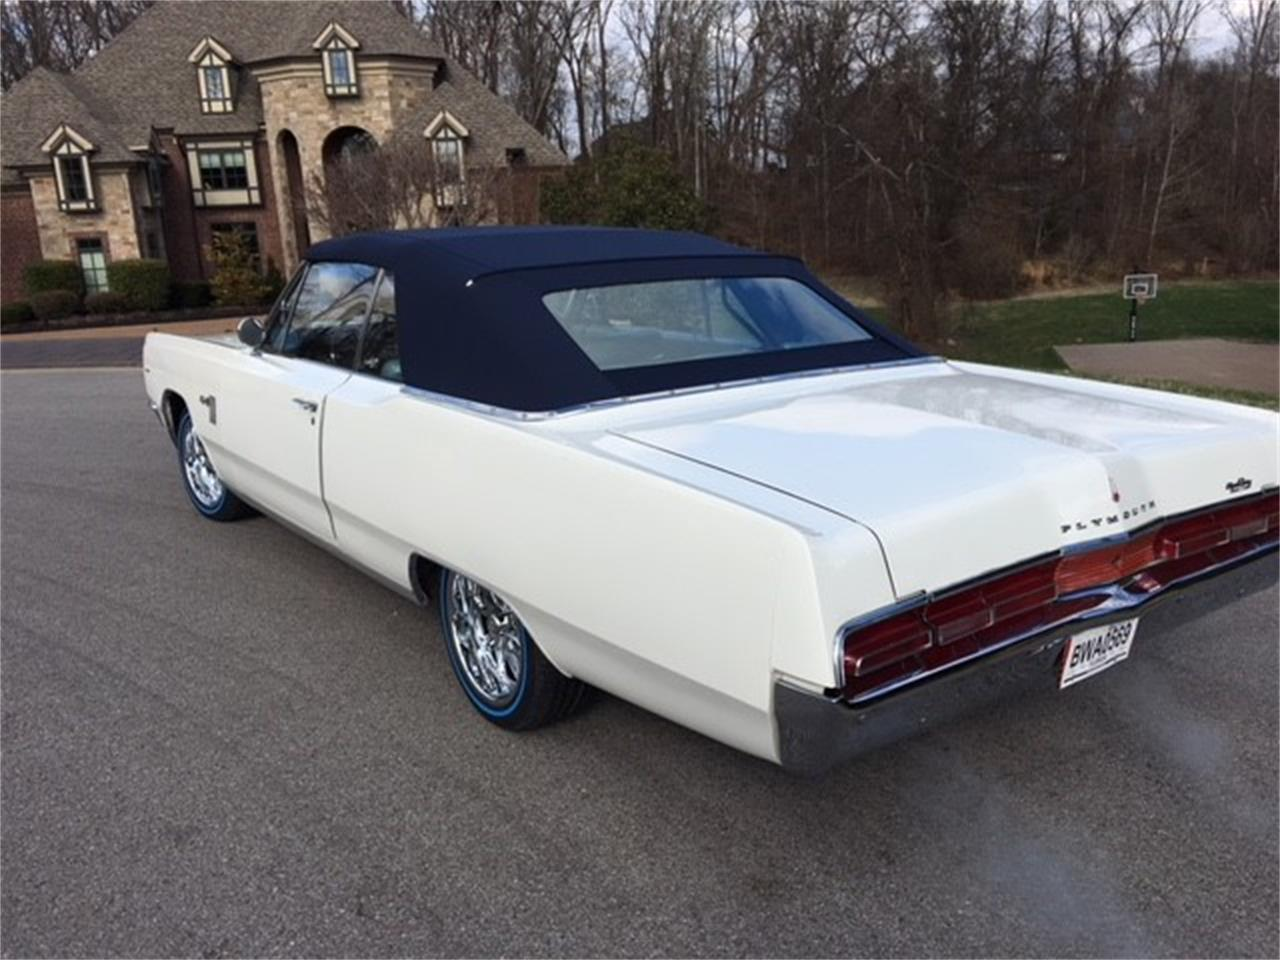 Large Picture of 1967 Plymouth Sport Fury located in Tennessee - $19,999.99 Offered by a Private Seller - MHTG